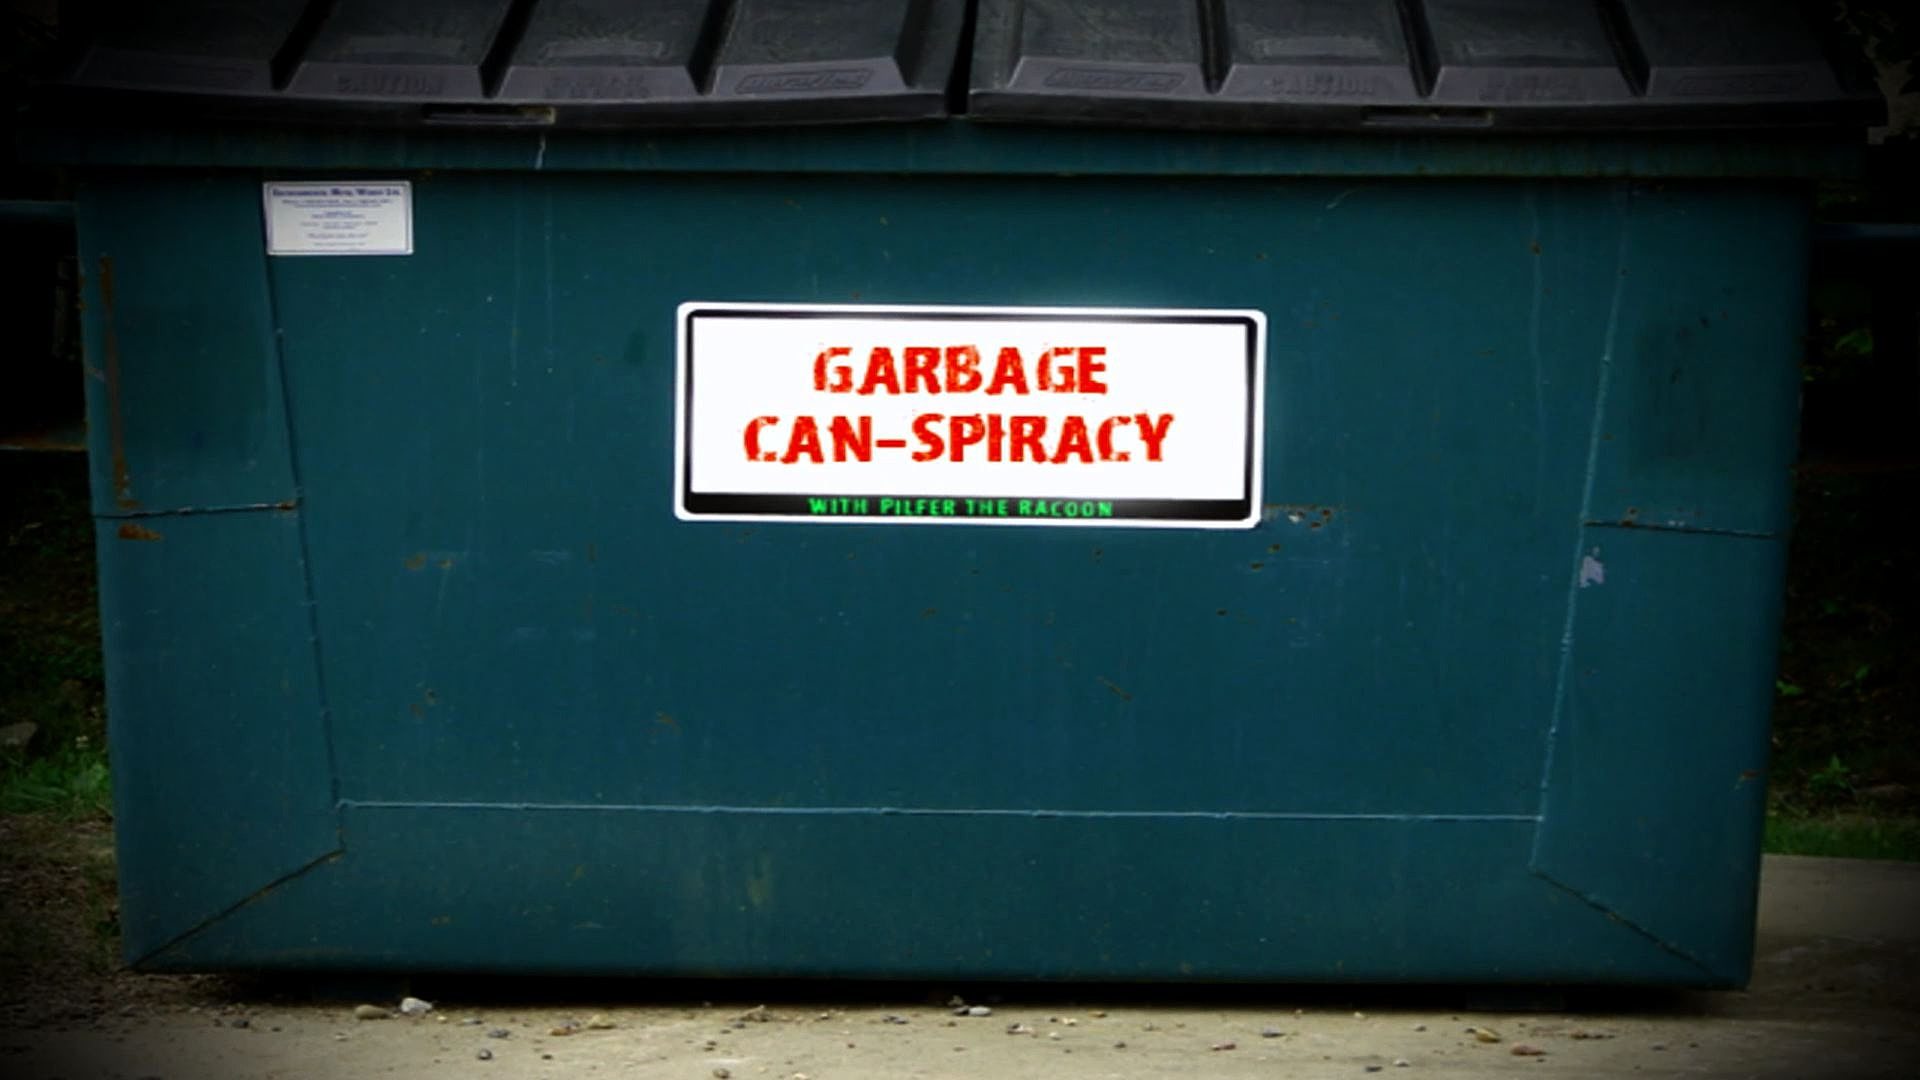 Garbage Can-spiracy w/Pilfer from Tdot.